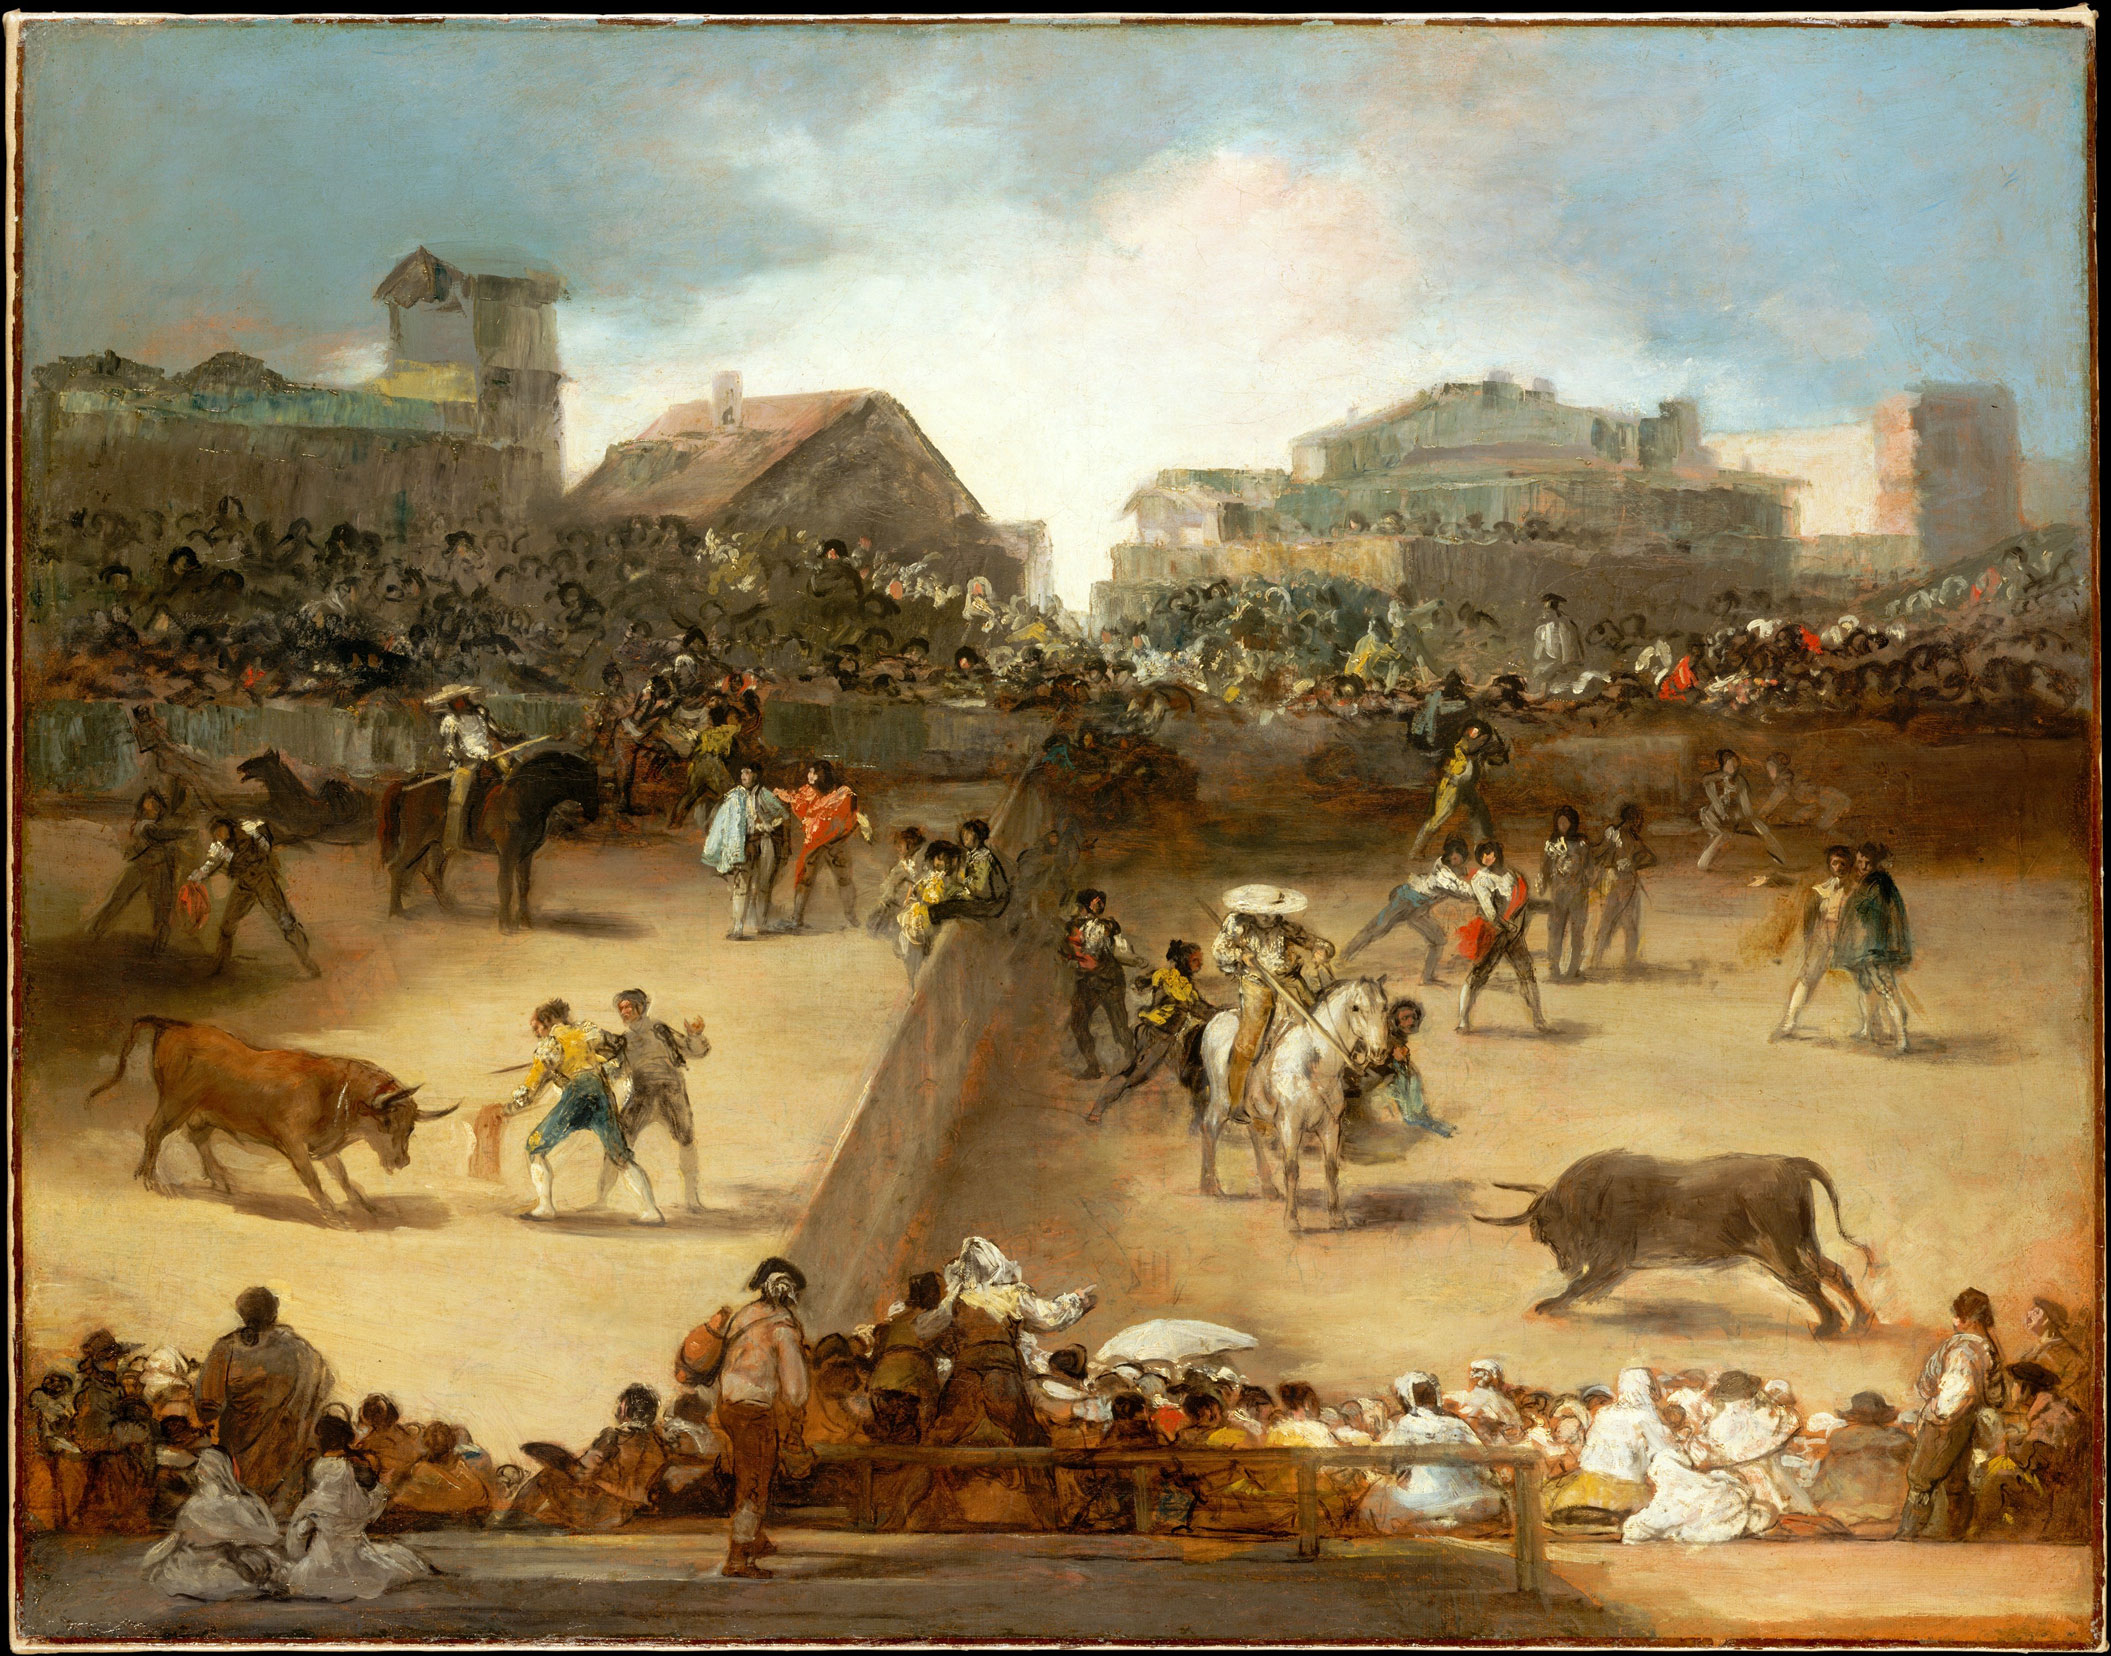 Spain's 4 most famous Artists - Goya, Painting of a Bullfight